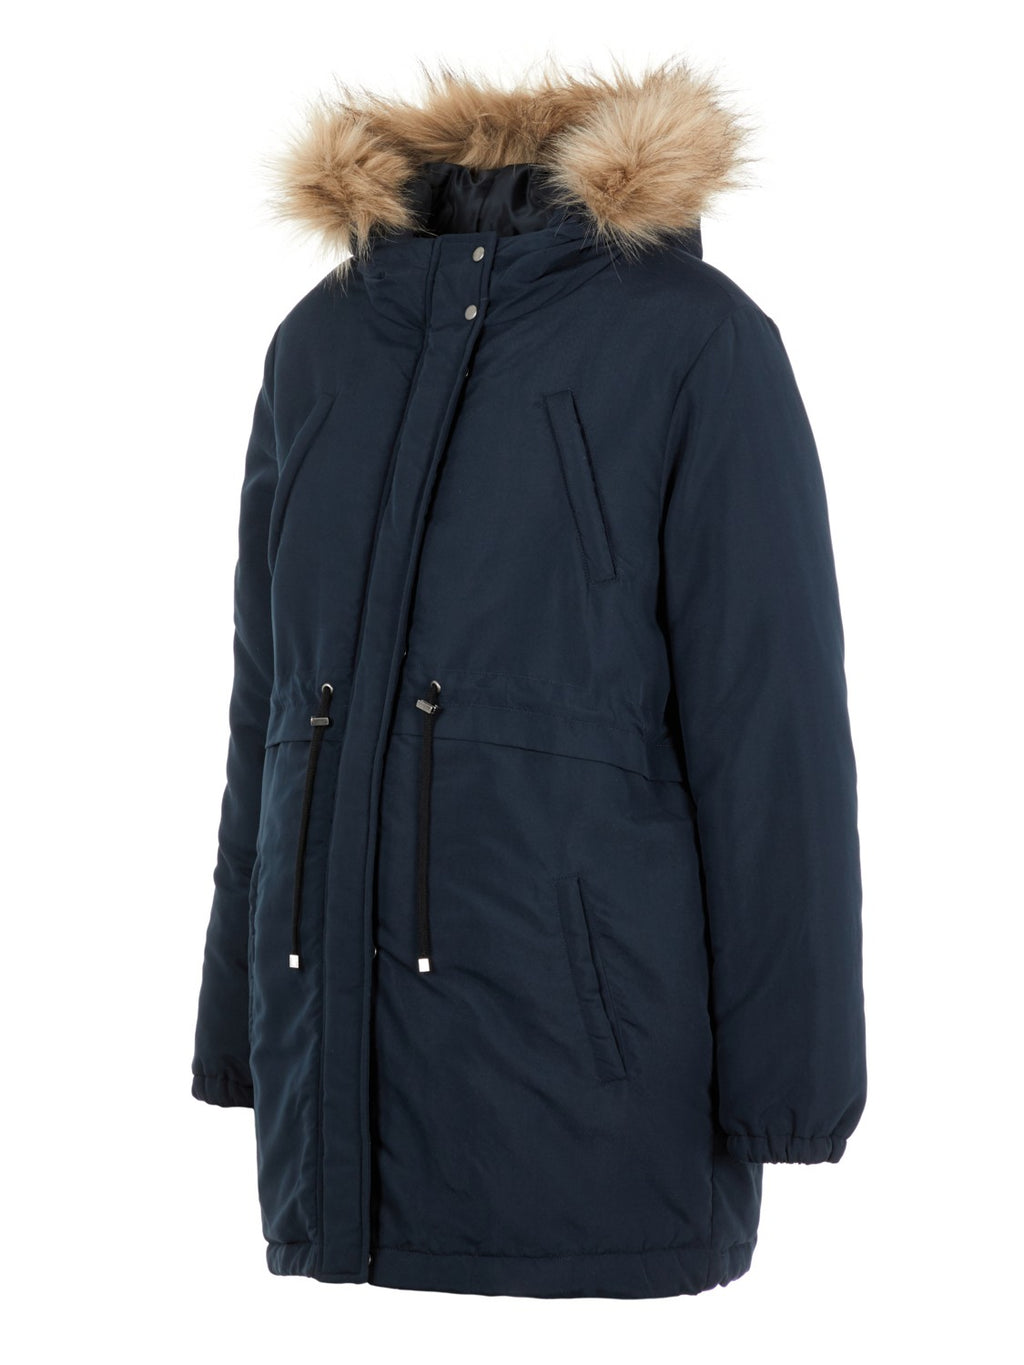 Jessie Maternity Coat